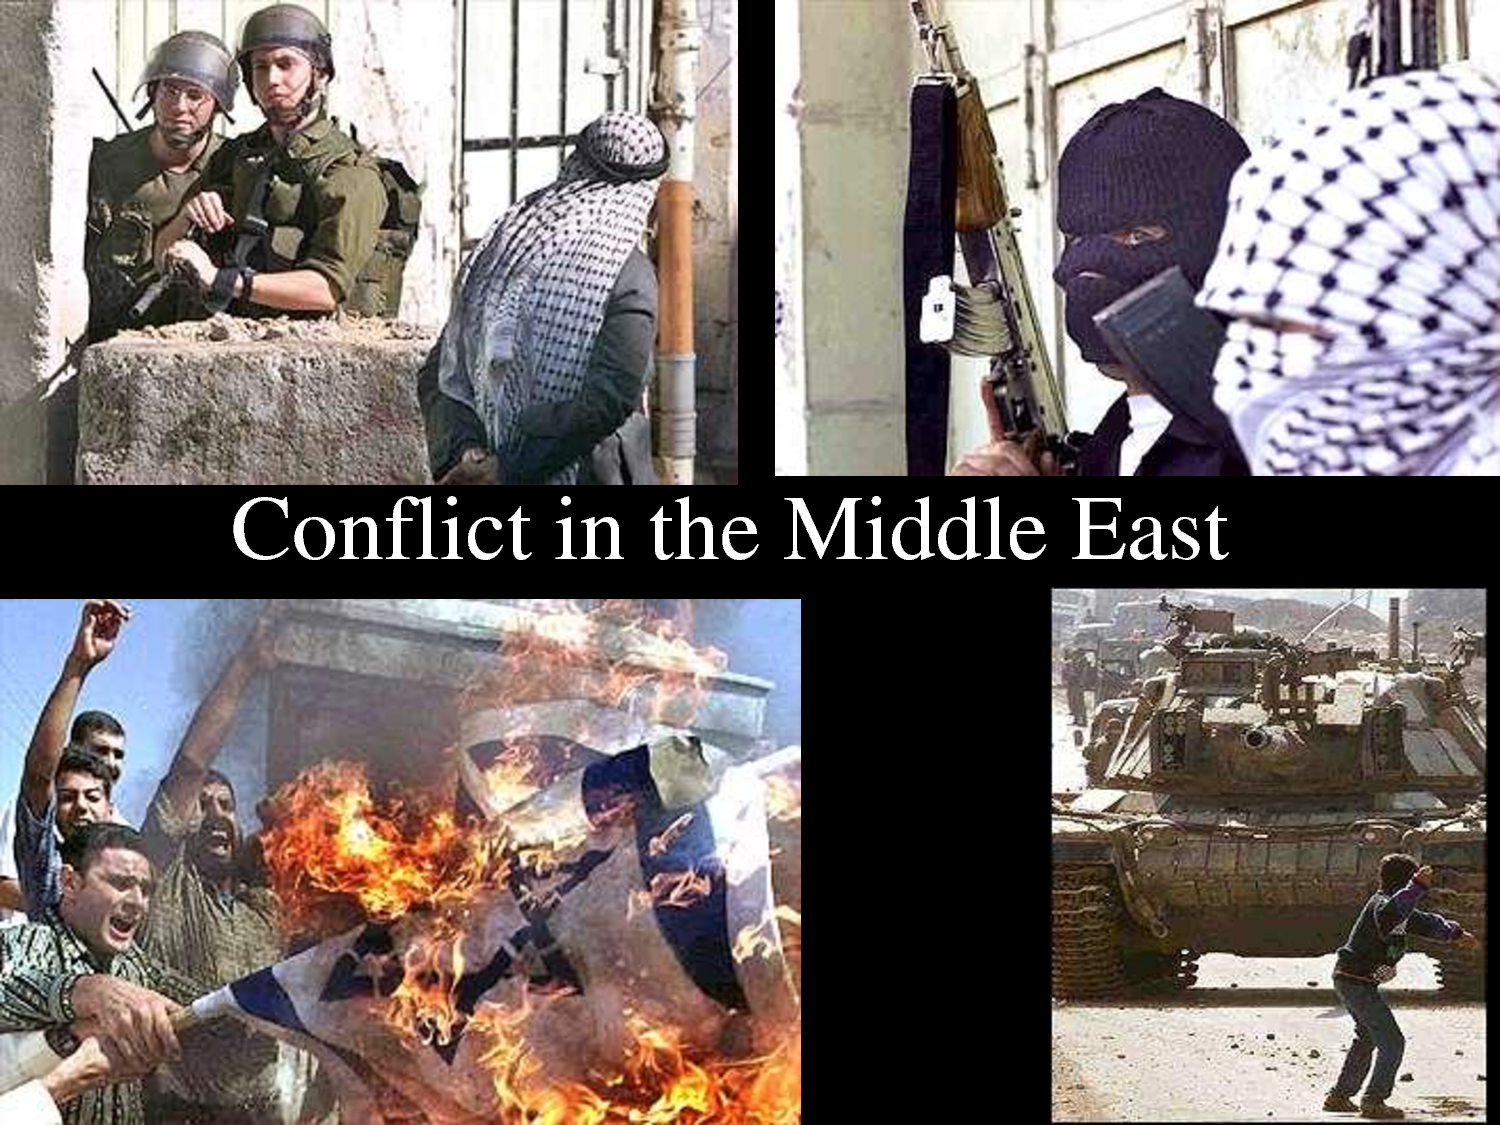 continuing conflicts in middle east The arab-israeli conflict refers to the political tension, military conflicts and disputes between a number of arab countries and israelthe roots of the arab-israeli conflict are attributed to the rise of zionism and arab nationalism towards the end of the 19th century.